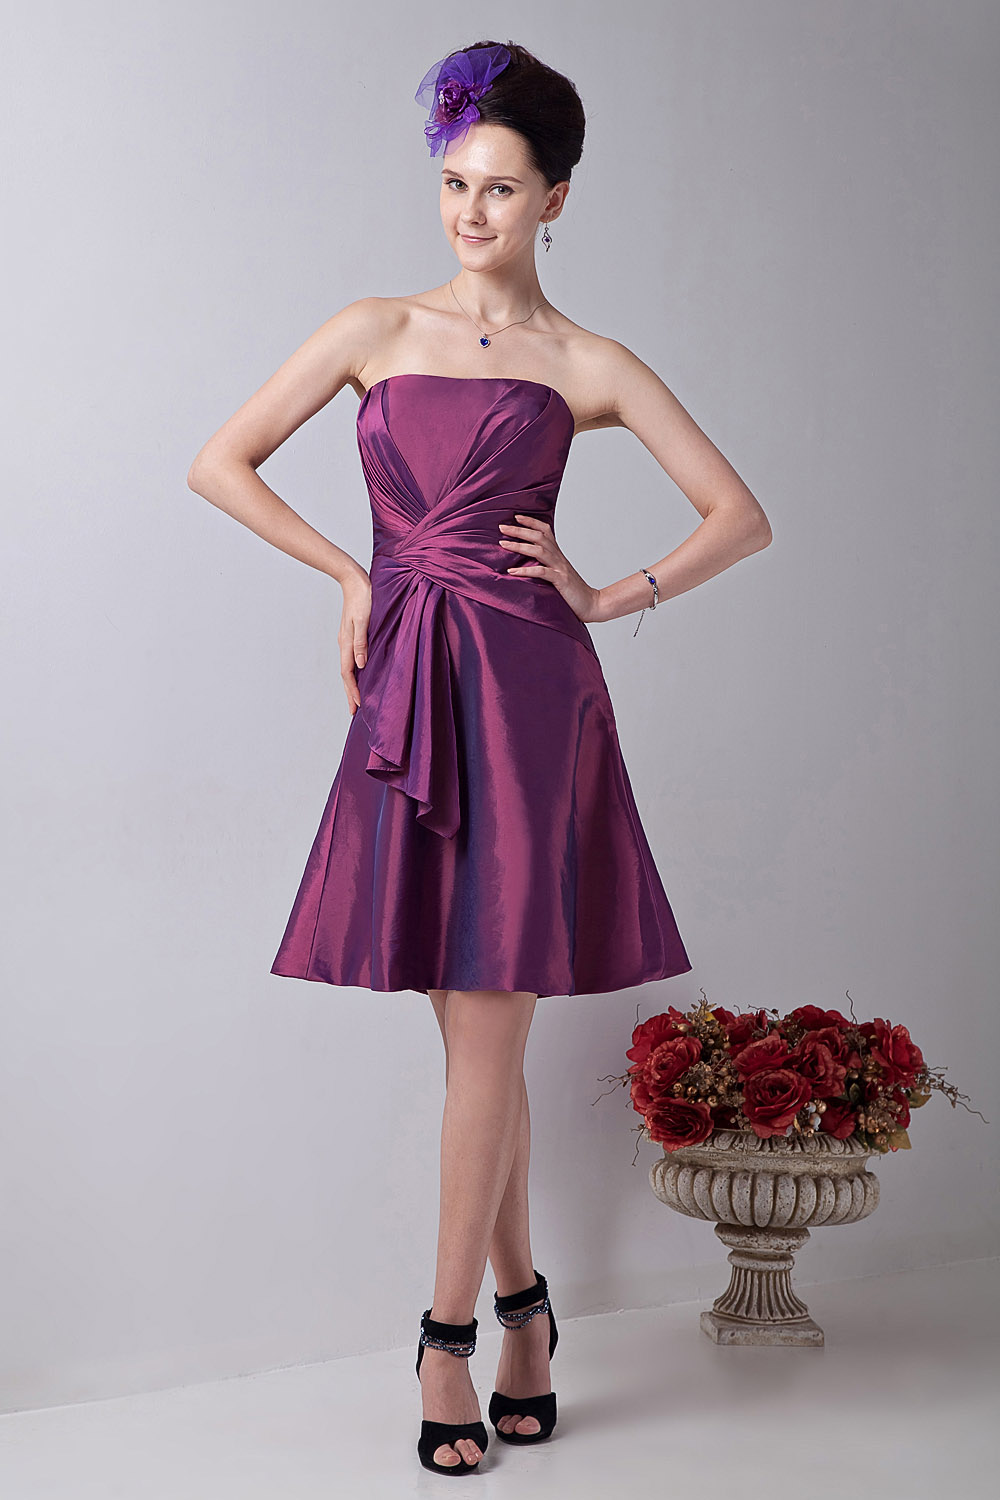 Sheath/Column Sweetheart Short/Mini Taffeta Graduation Dress